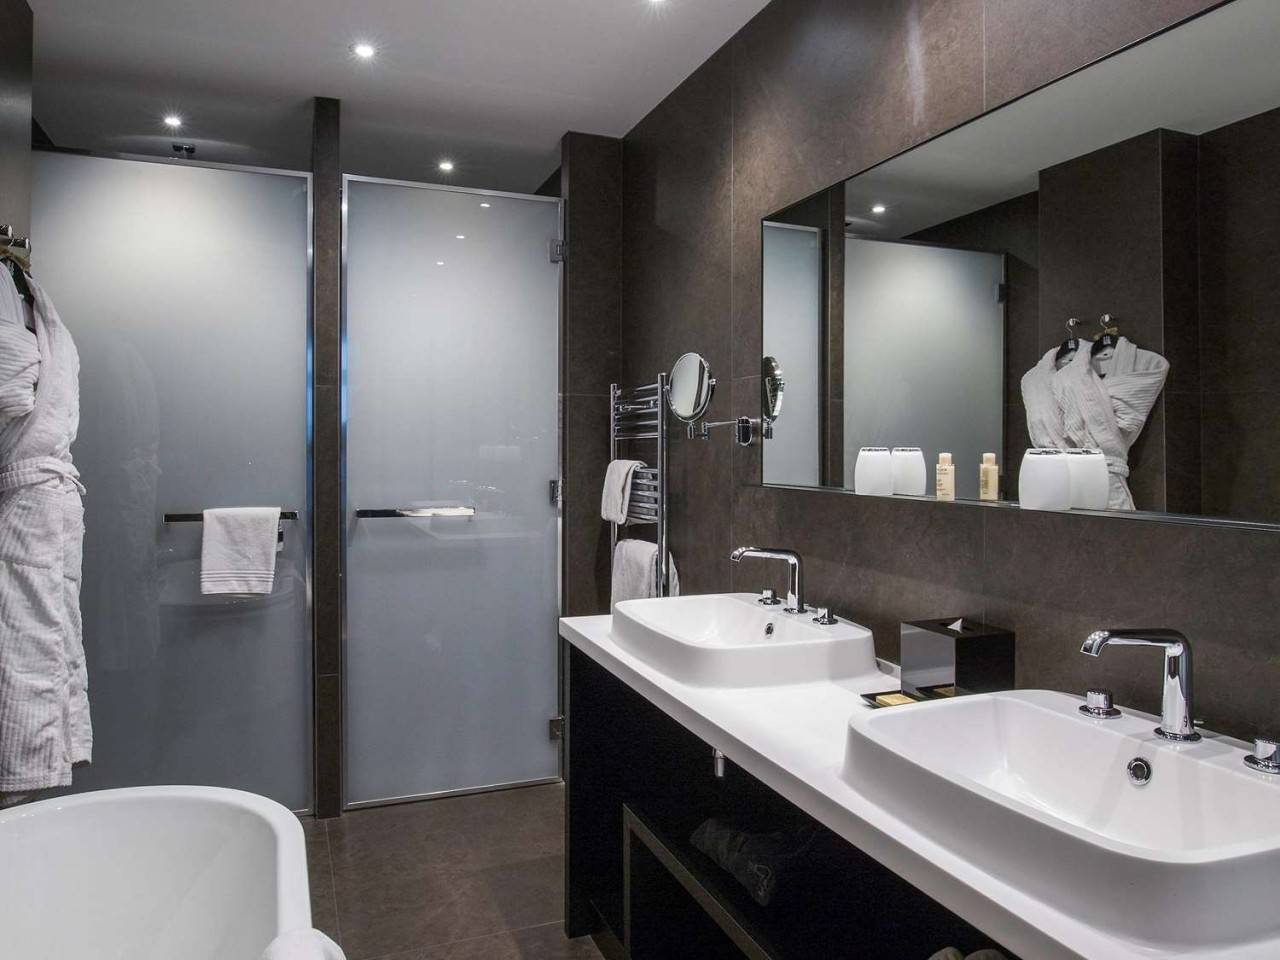 Balthazar Hotel Spa Rennes Mgallery 5 Hrs Star Hotel In